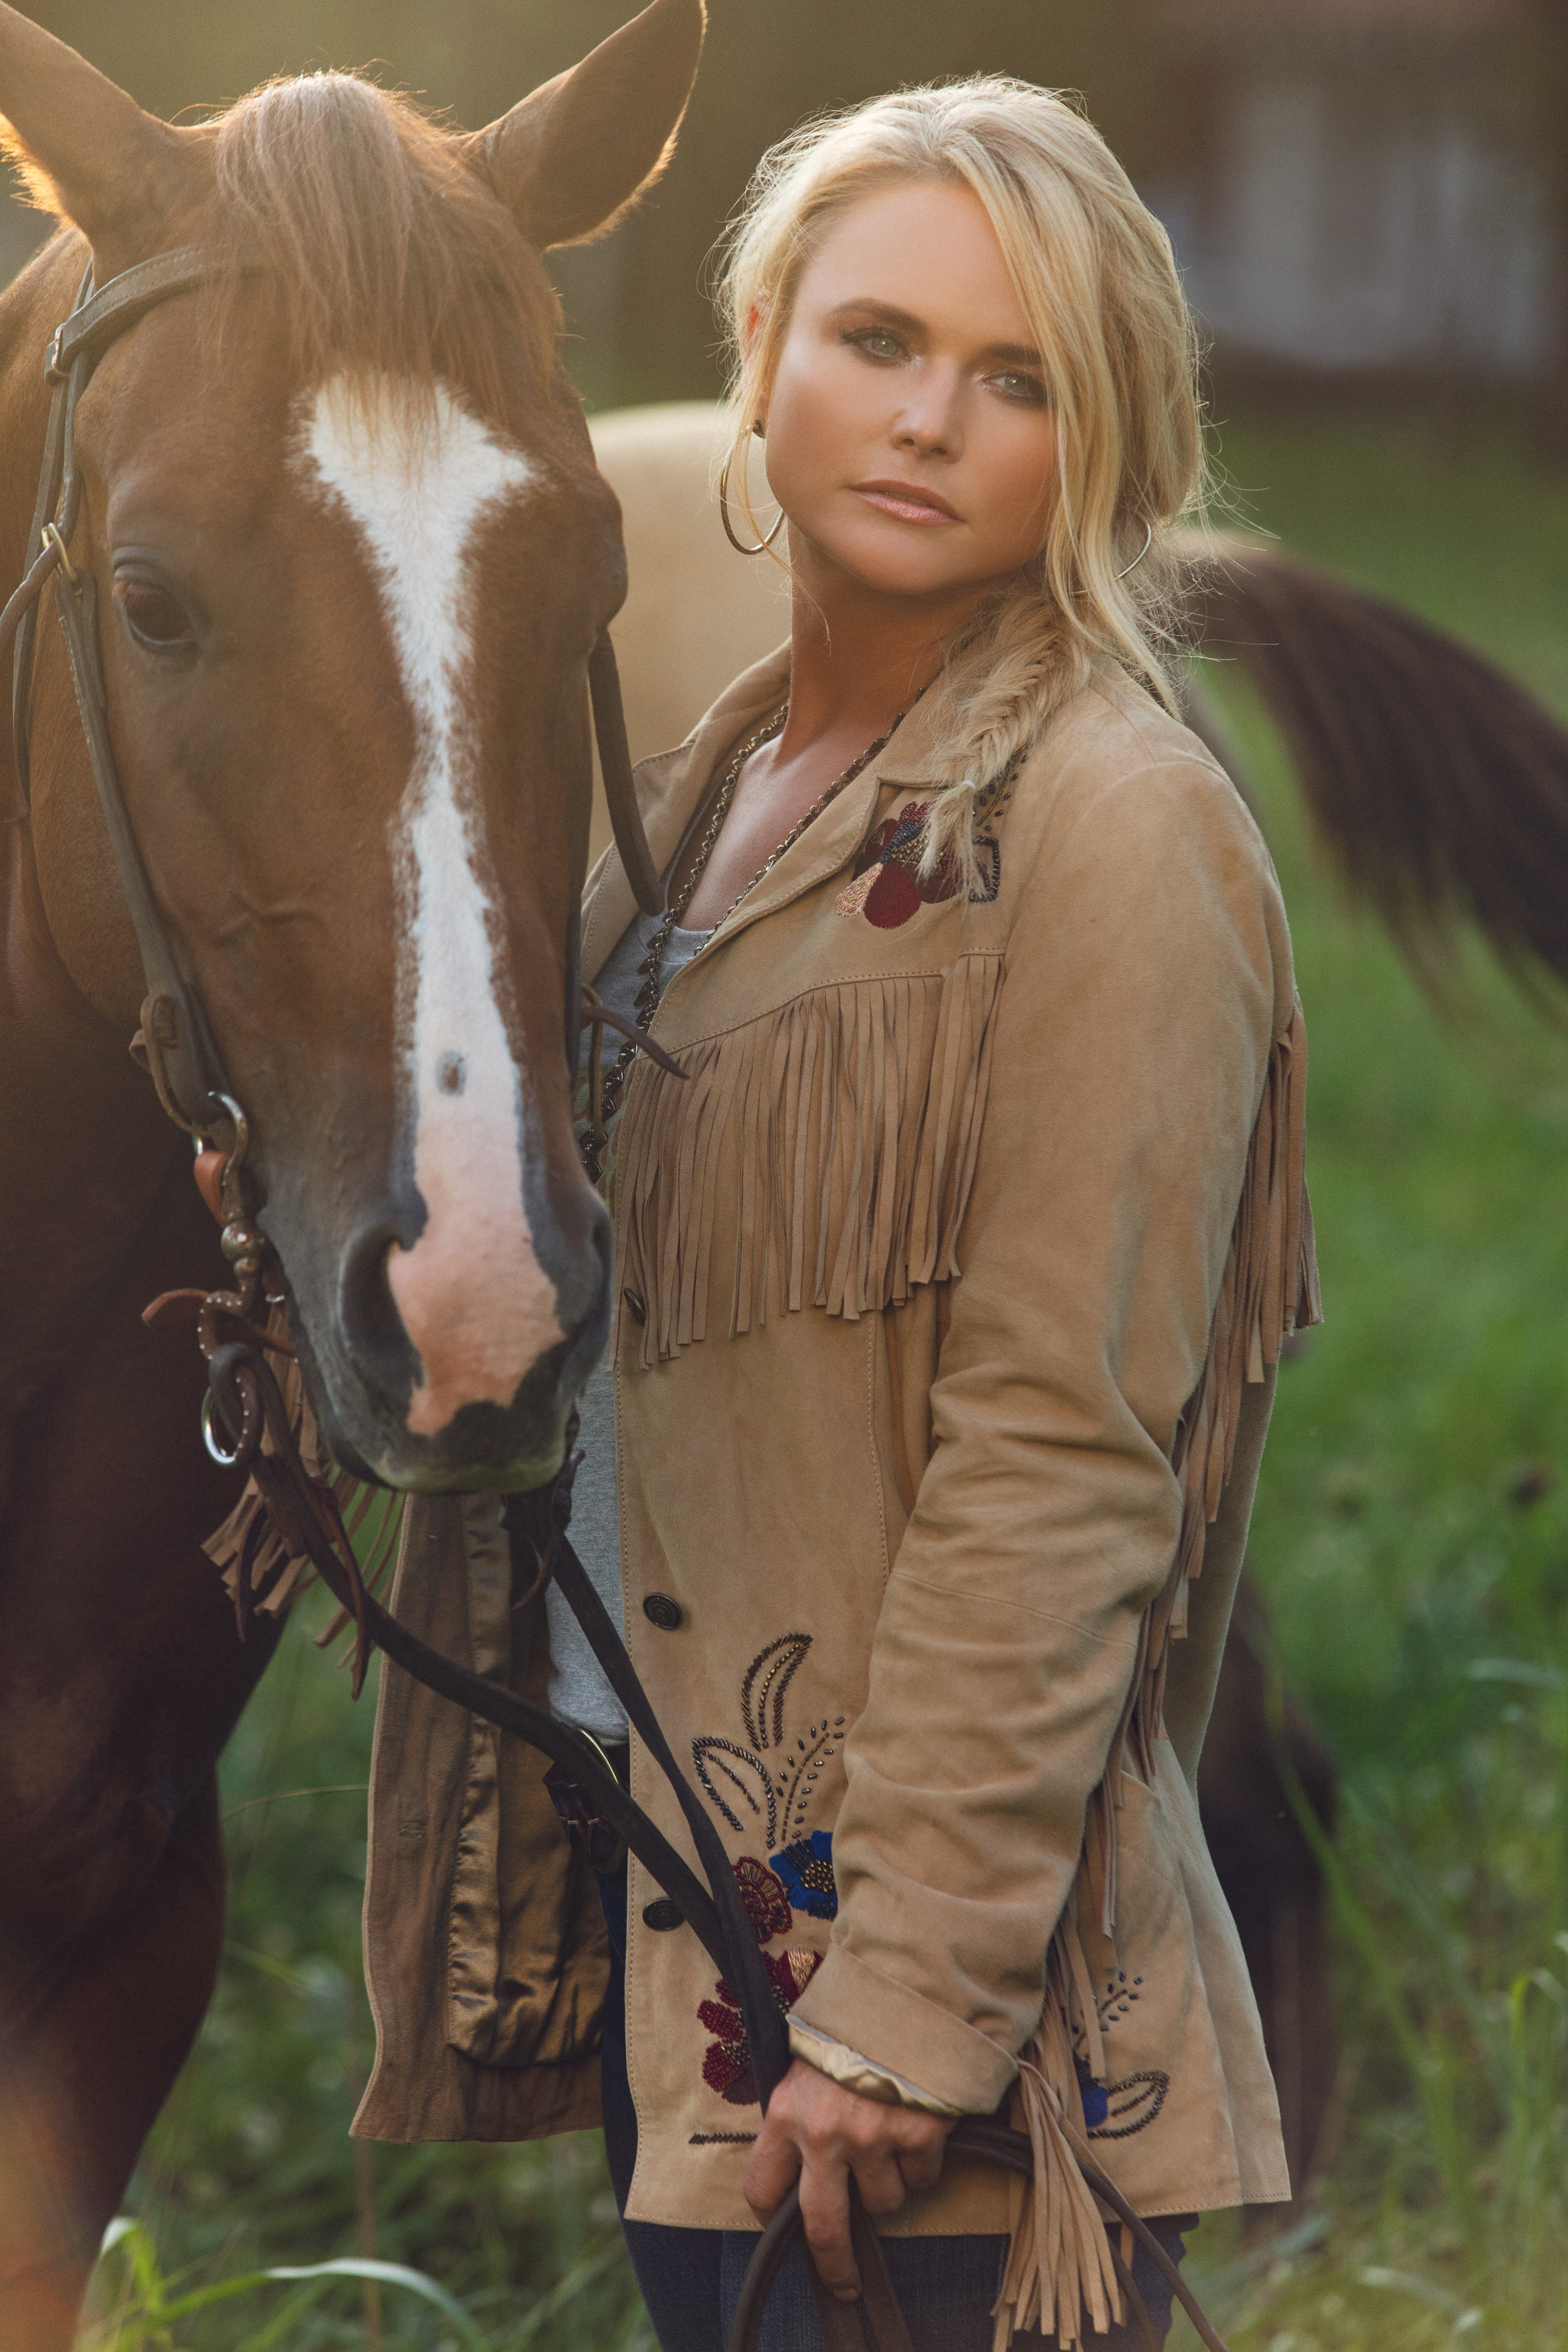 Miranda Lambert's new clothing line Idyllwind is now available